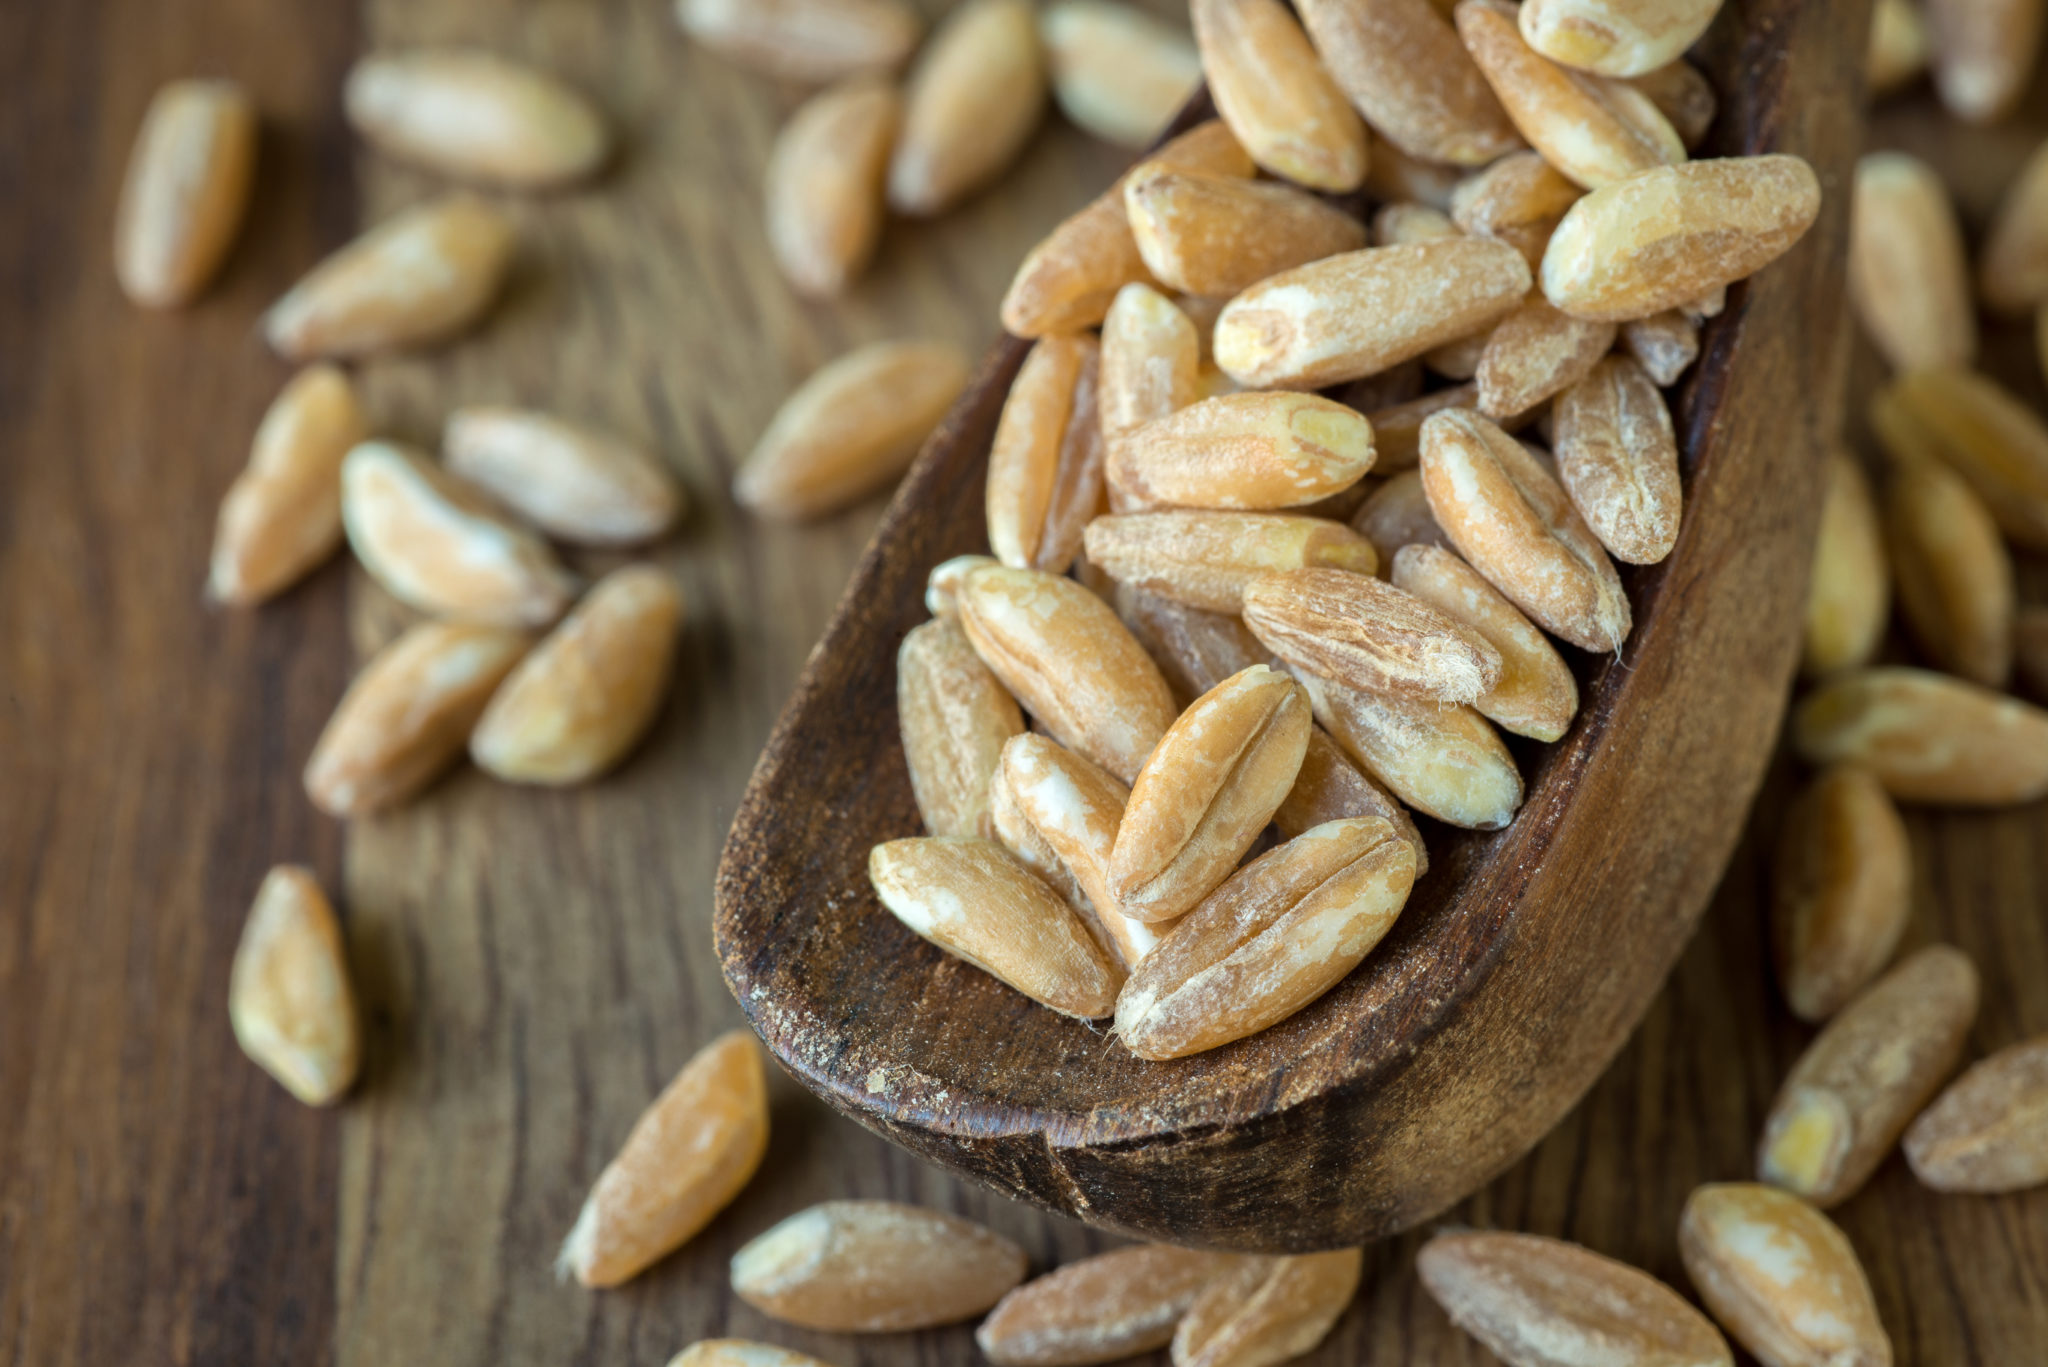 Farro Benefits: Here's Why This Whole